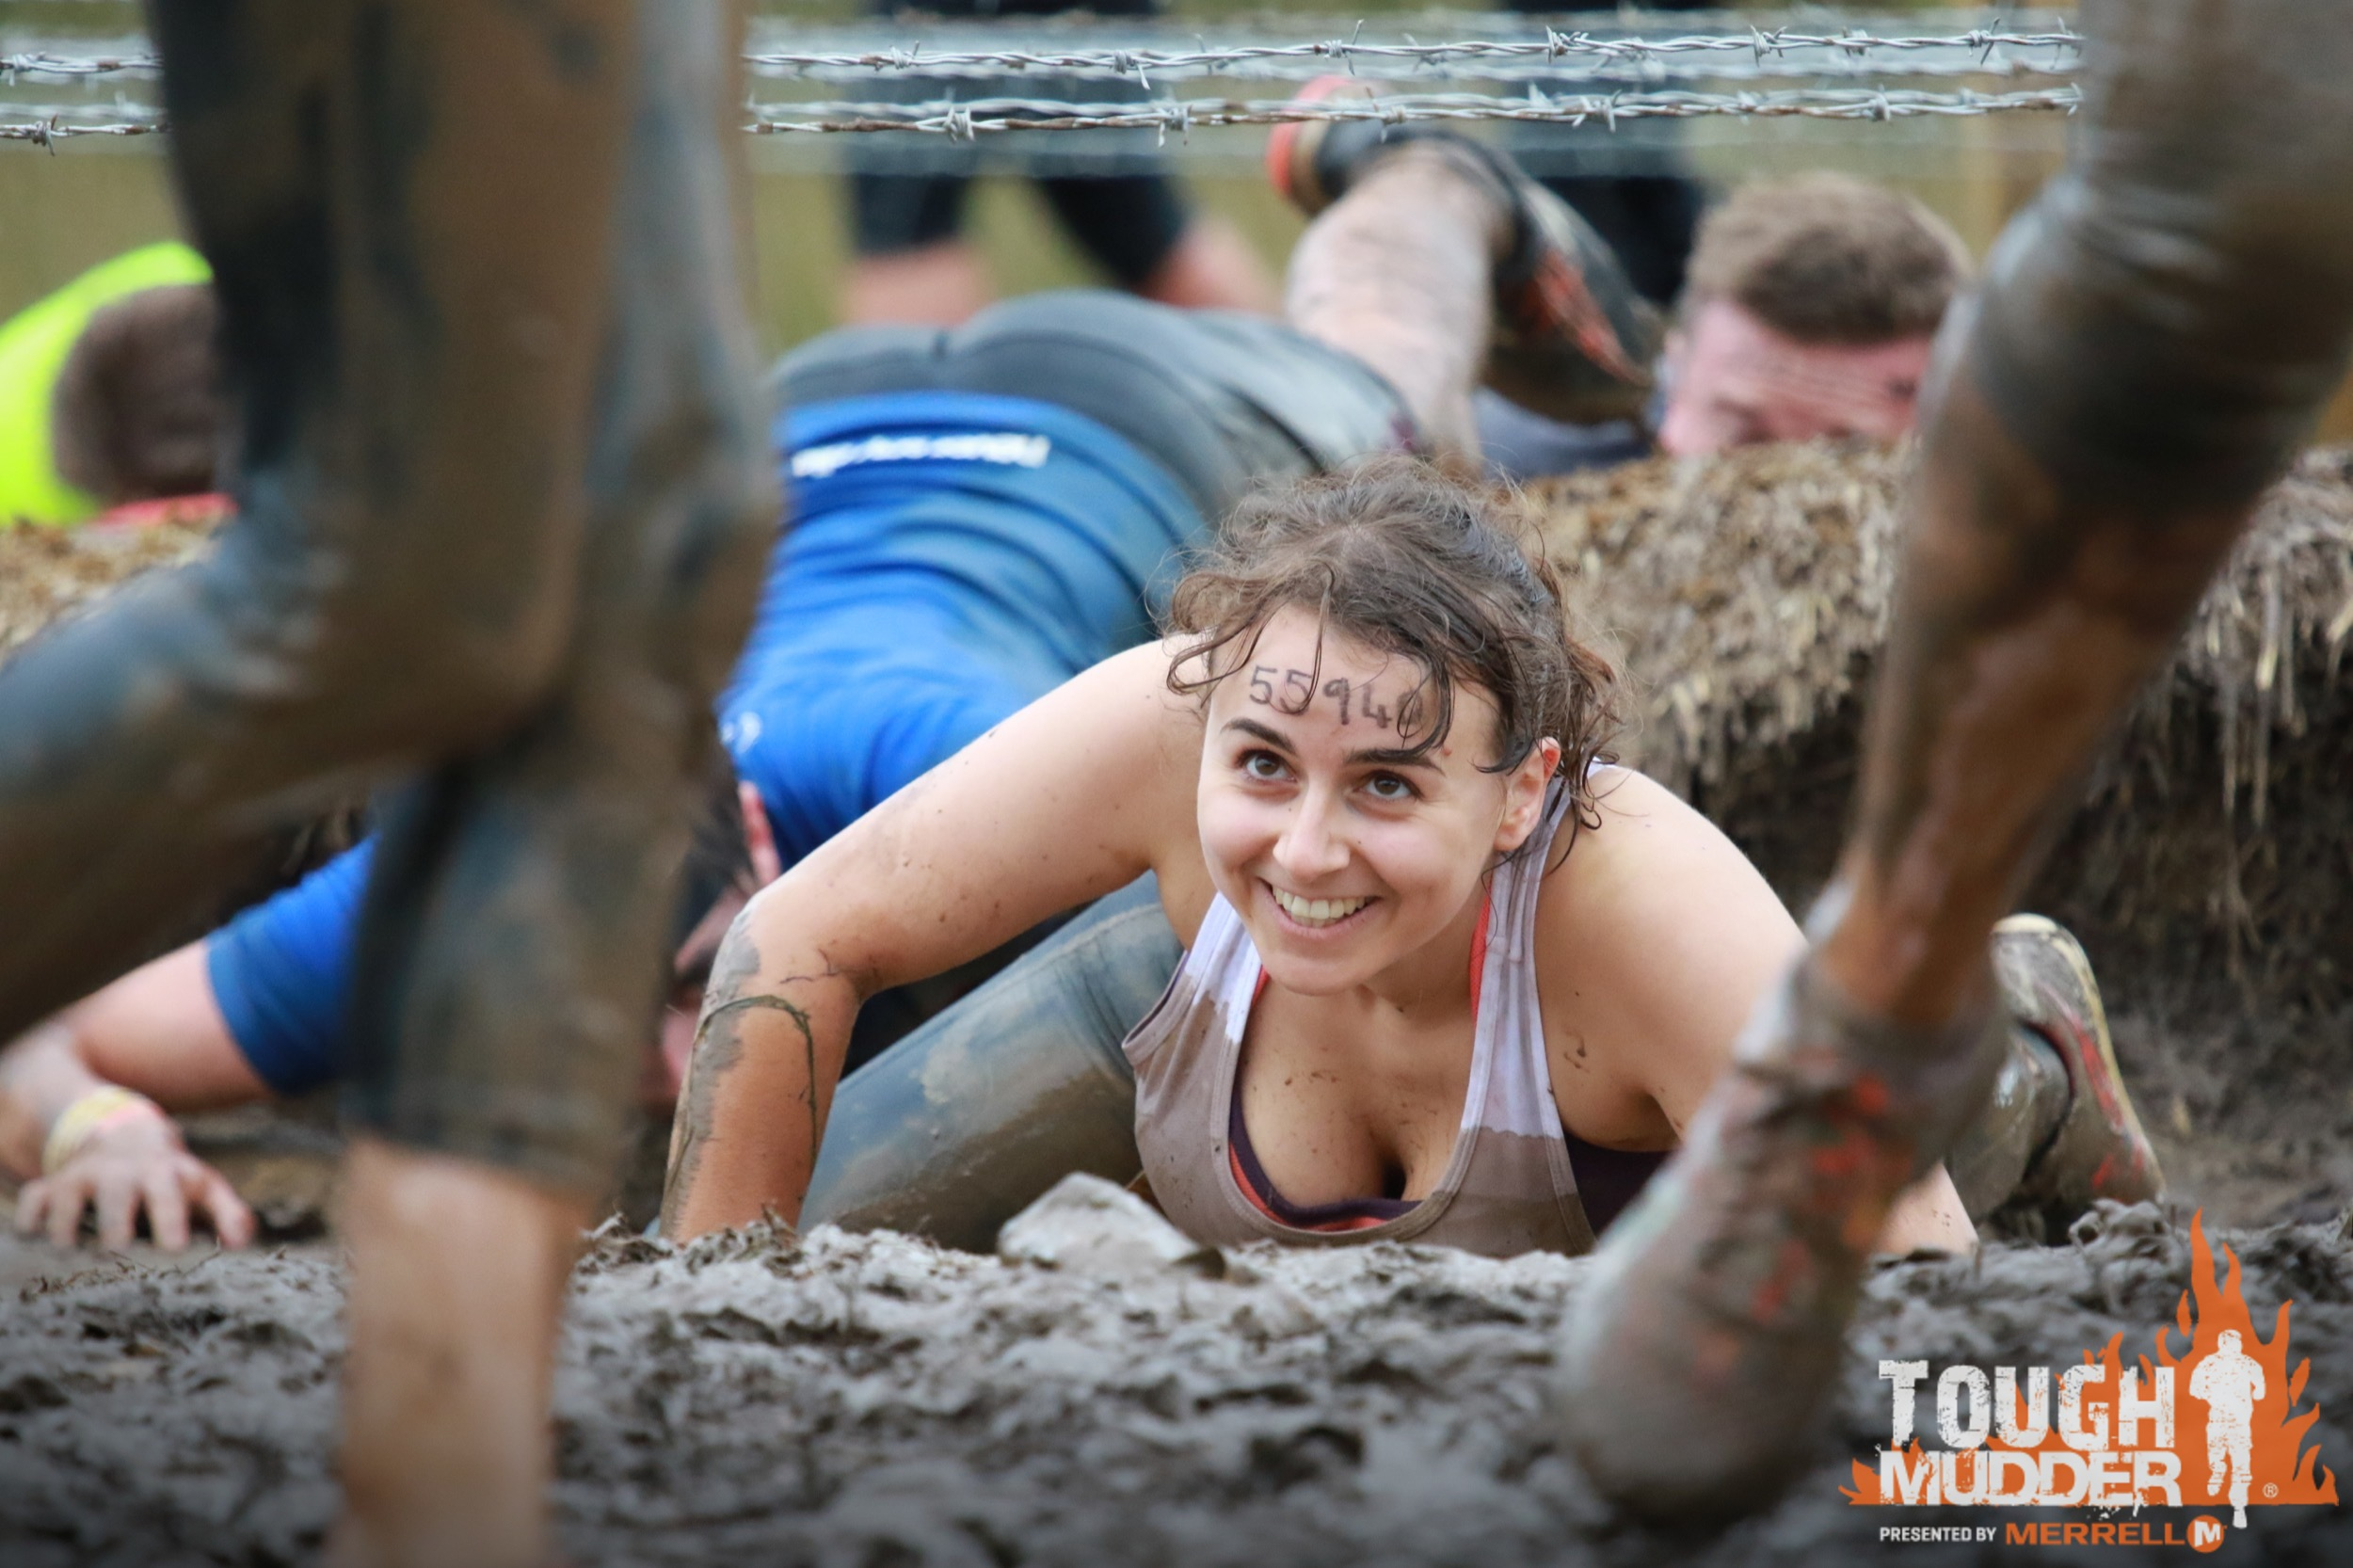 Photo sent by Jessica Allen - check permissions of Tough Mudder photos before publishing in print 3